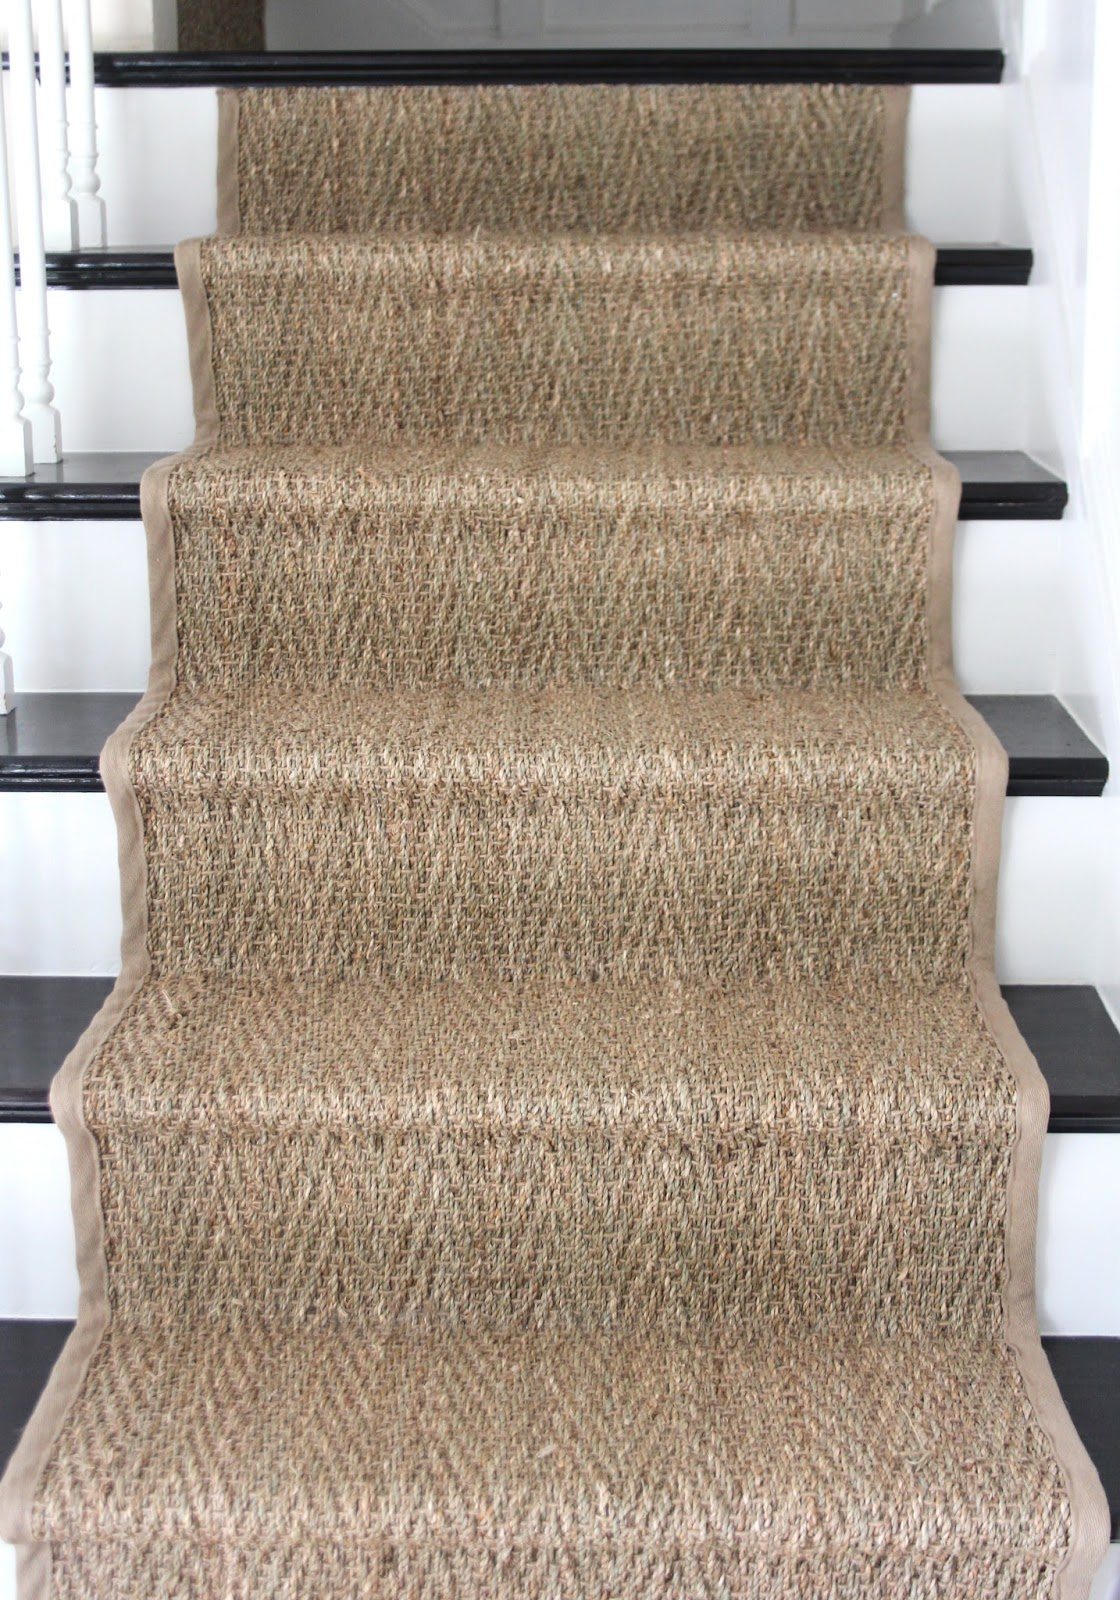 How To: Seagrass Stair Runner - Shine Your Light